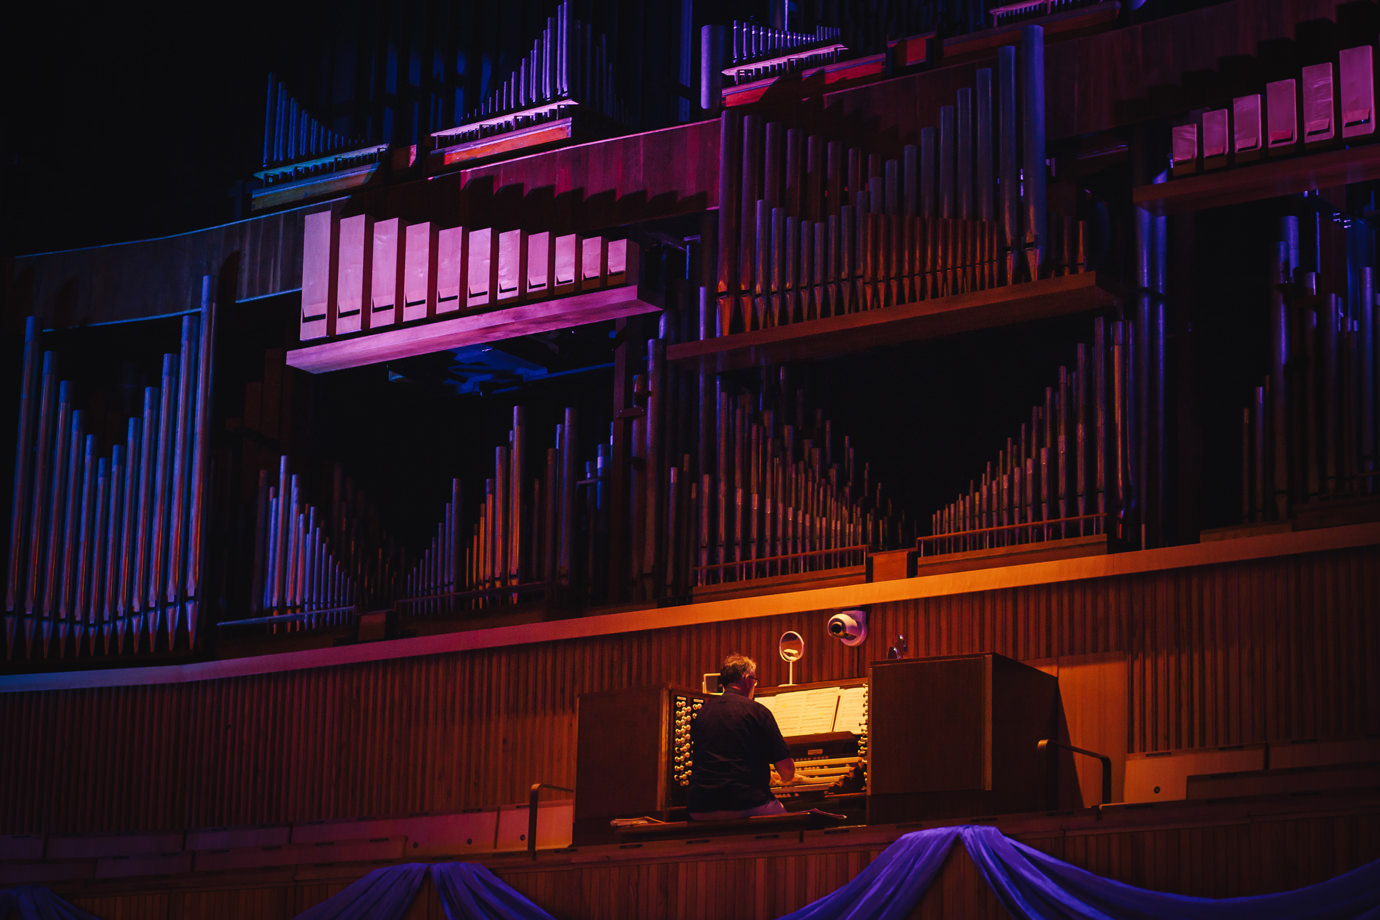 Organist, Royal Festival Hall, Southbank, London